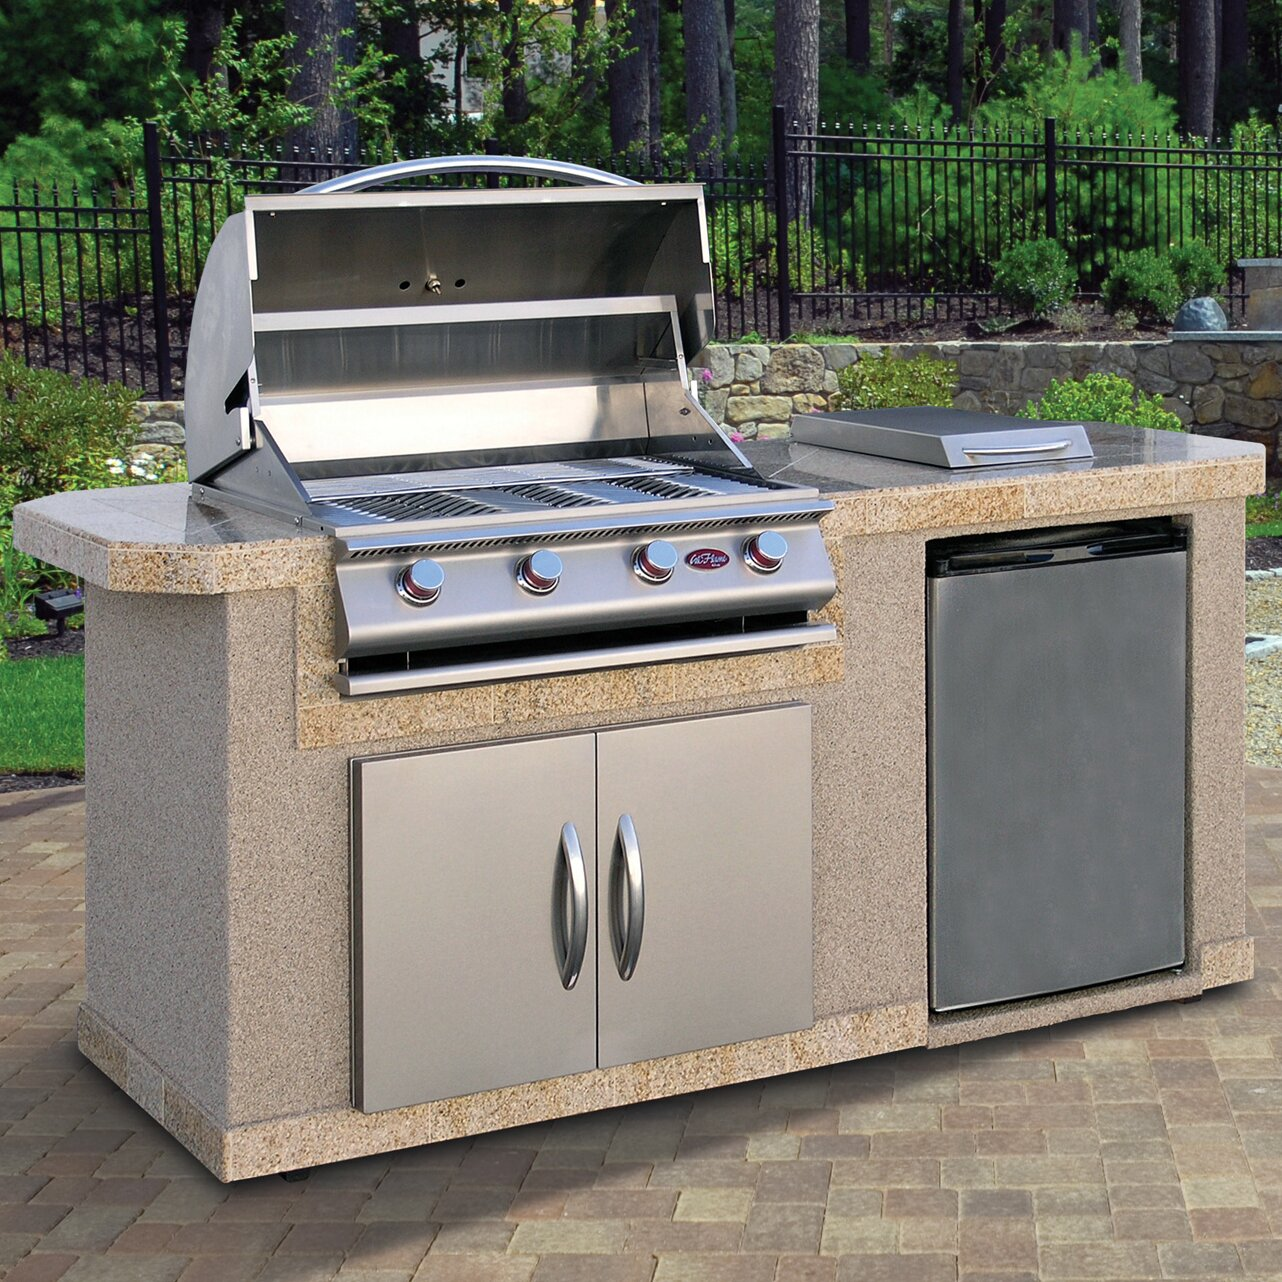 Calflame outdoor kitchen islands 4 burner built in propane for Gasgrill fur outdoor kuche